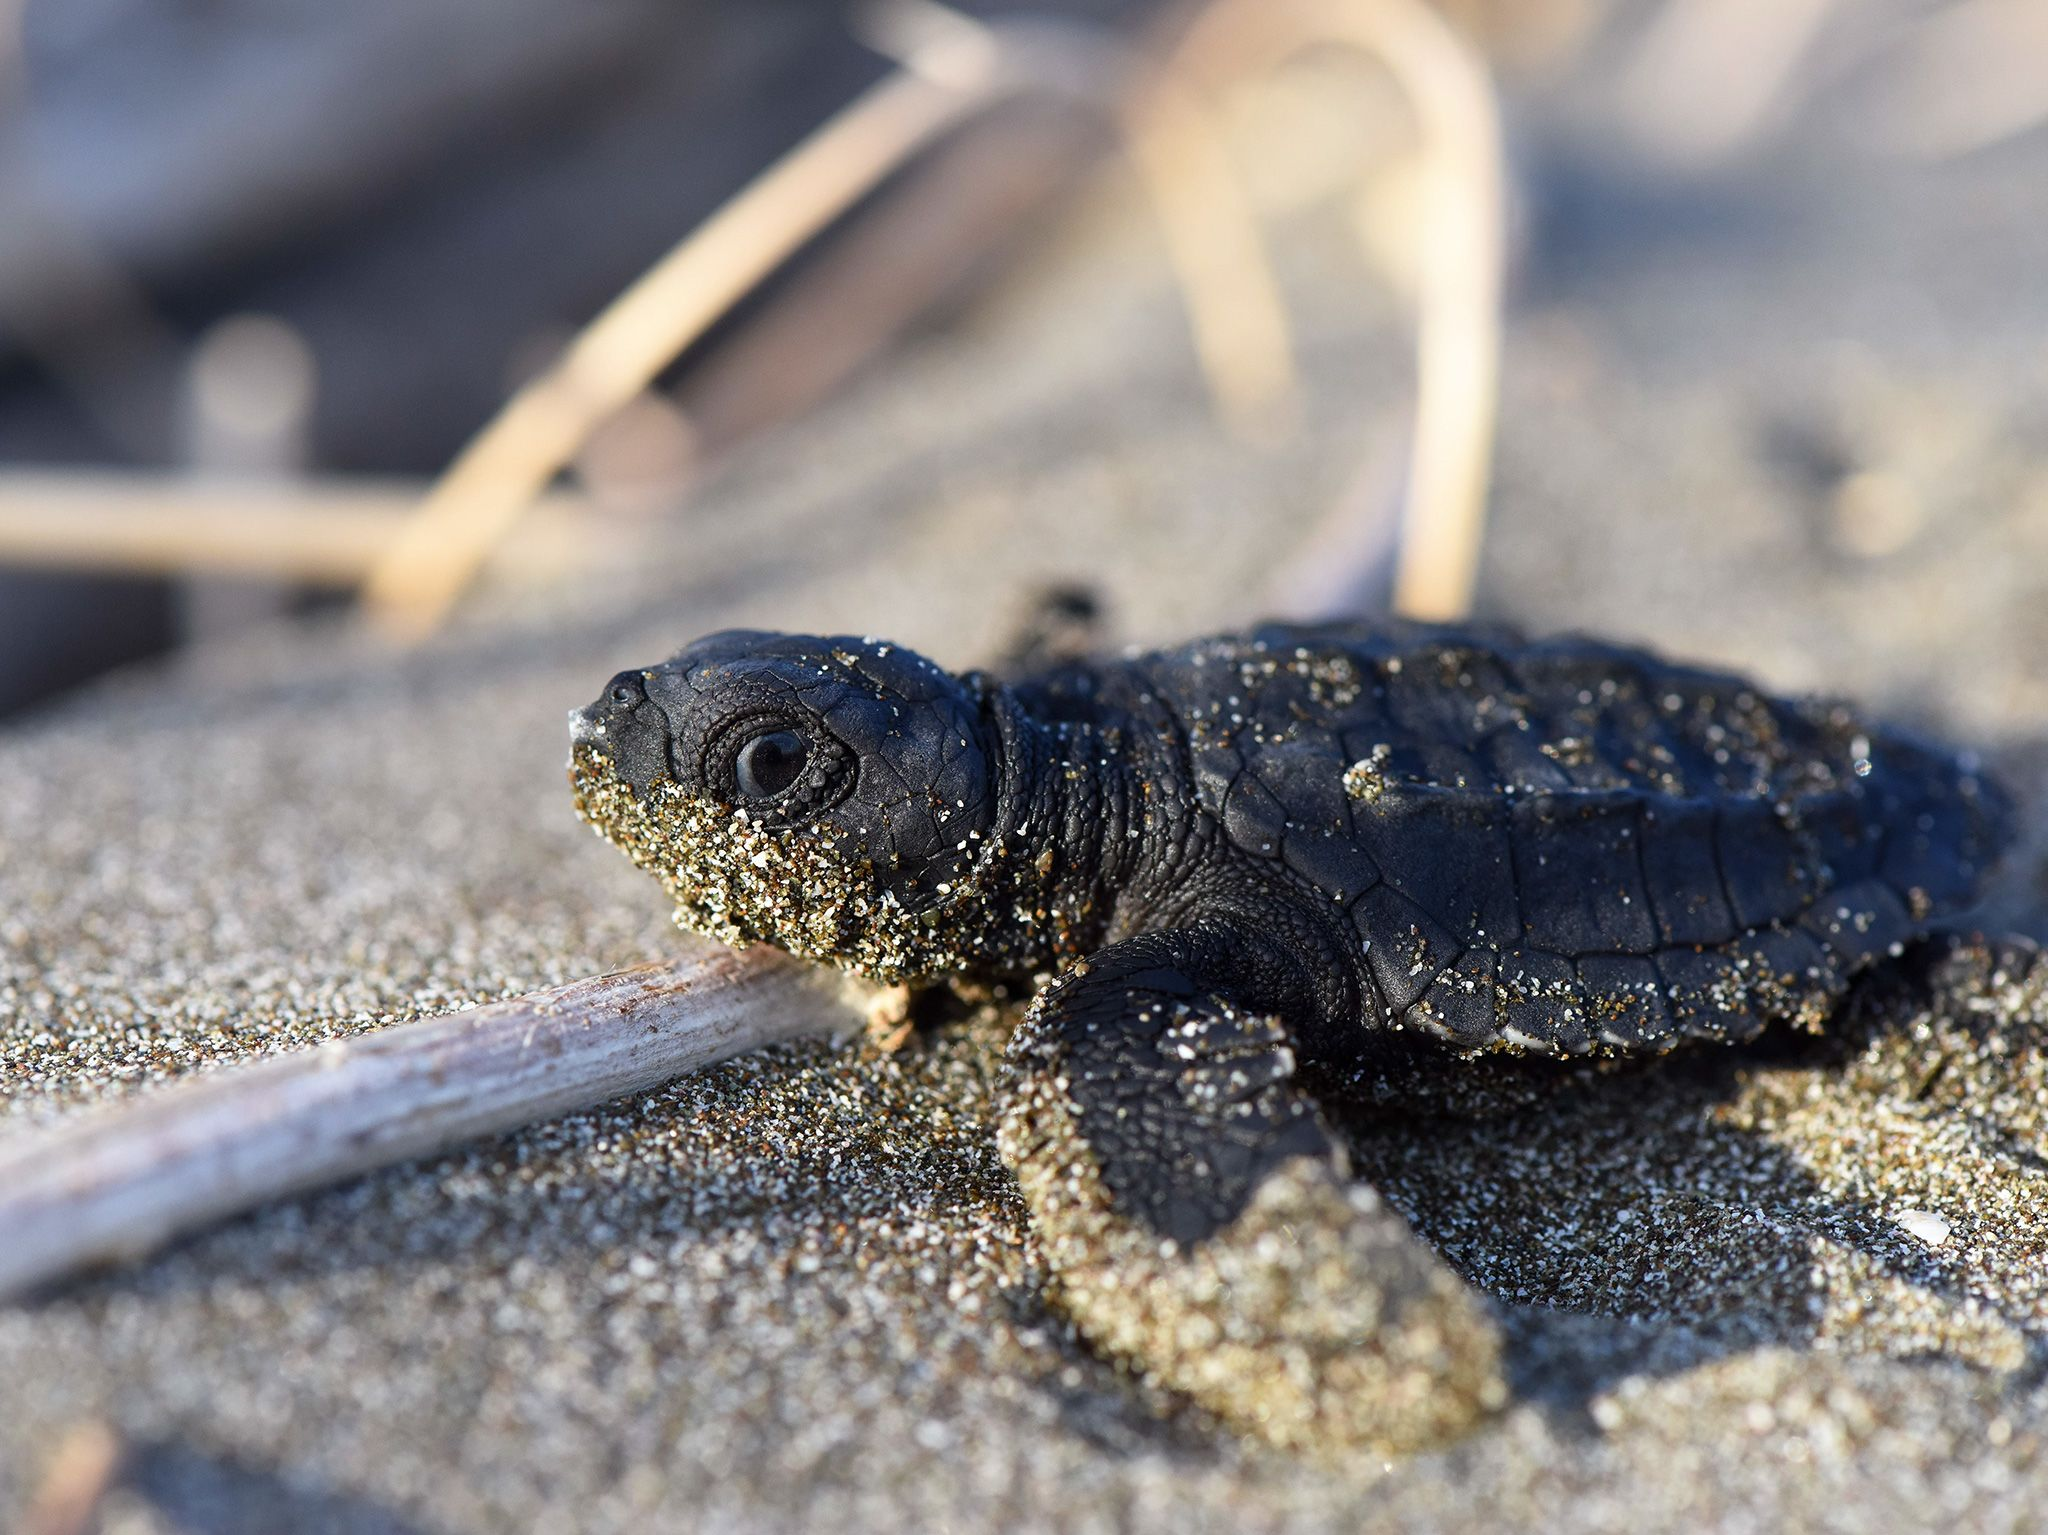 Nancite, Costa Rica: After digging its way to this surface, this turtle hatchling must now run a... [Photo of the day - April 2019]